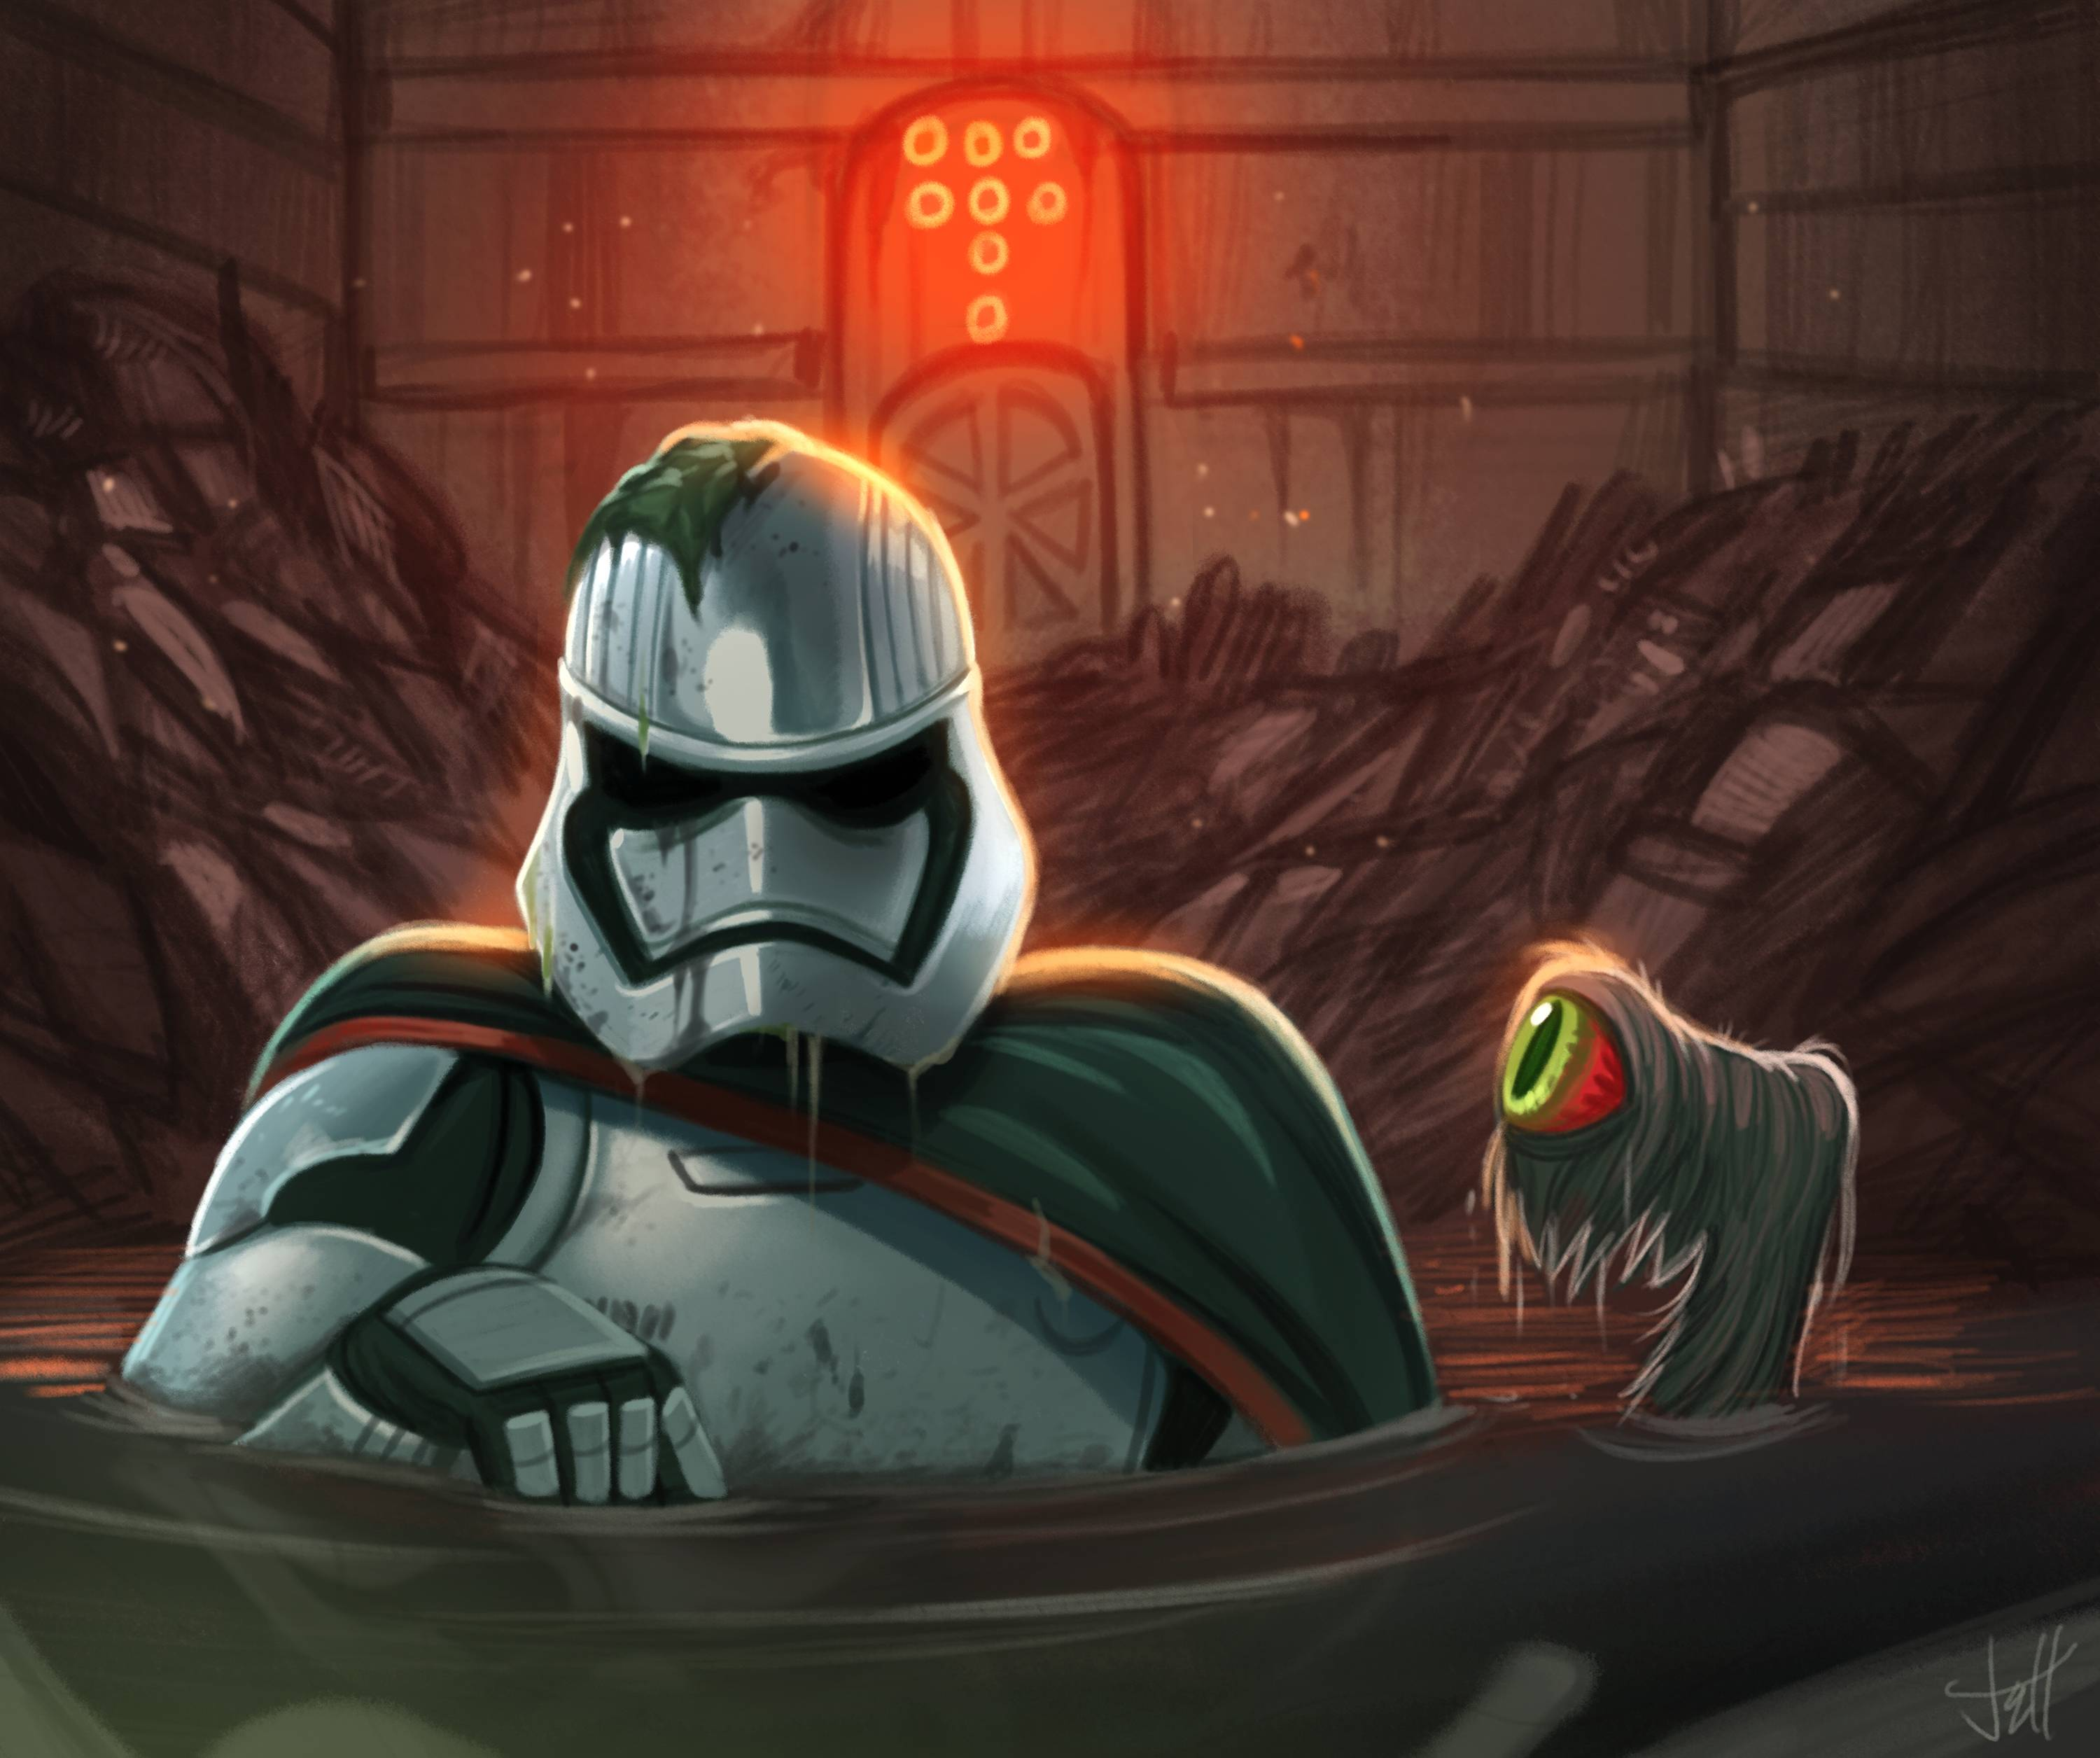 Captain Phasma trapped in the trash compactor Full HD Wallpaper ...